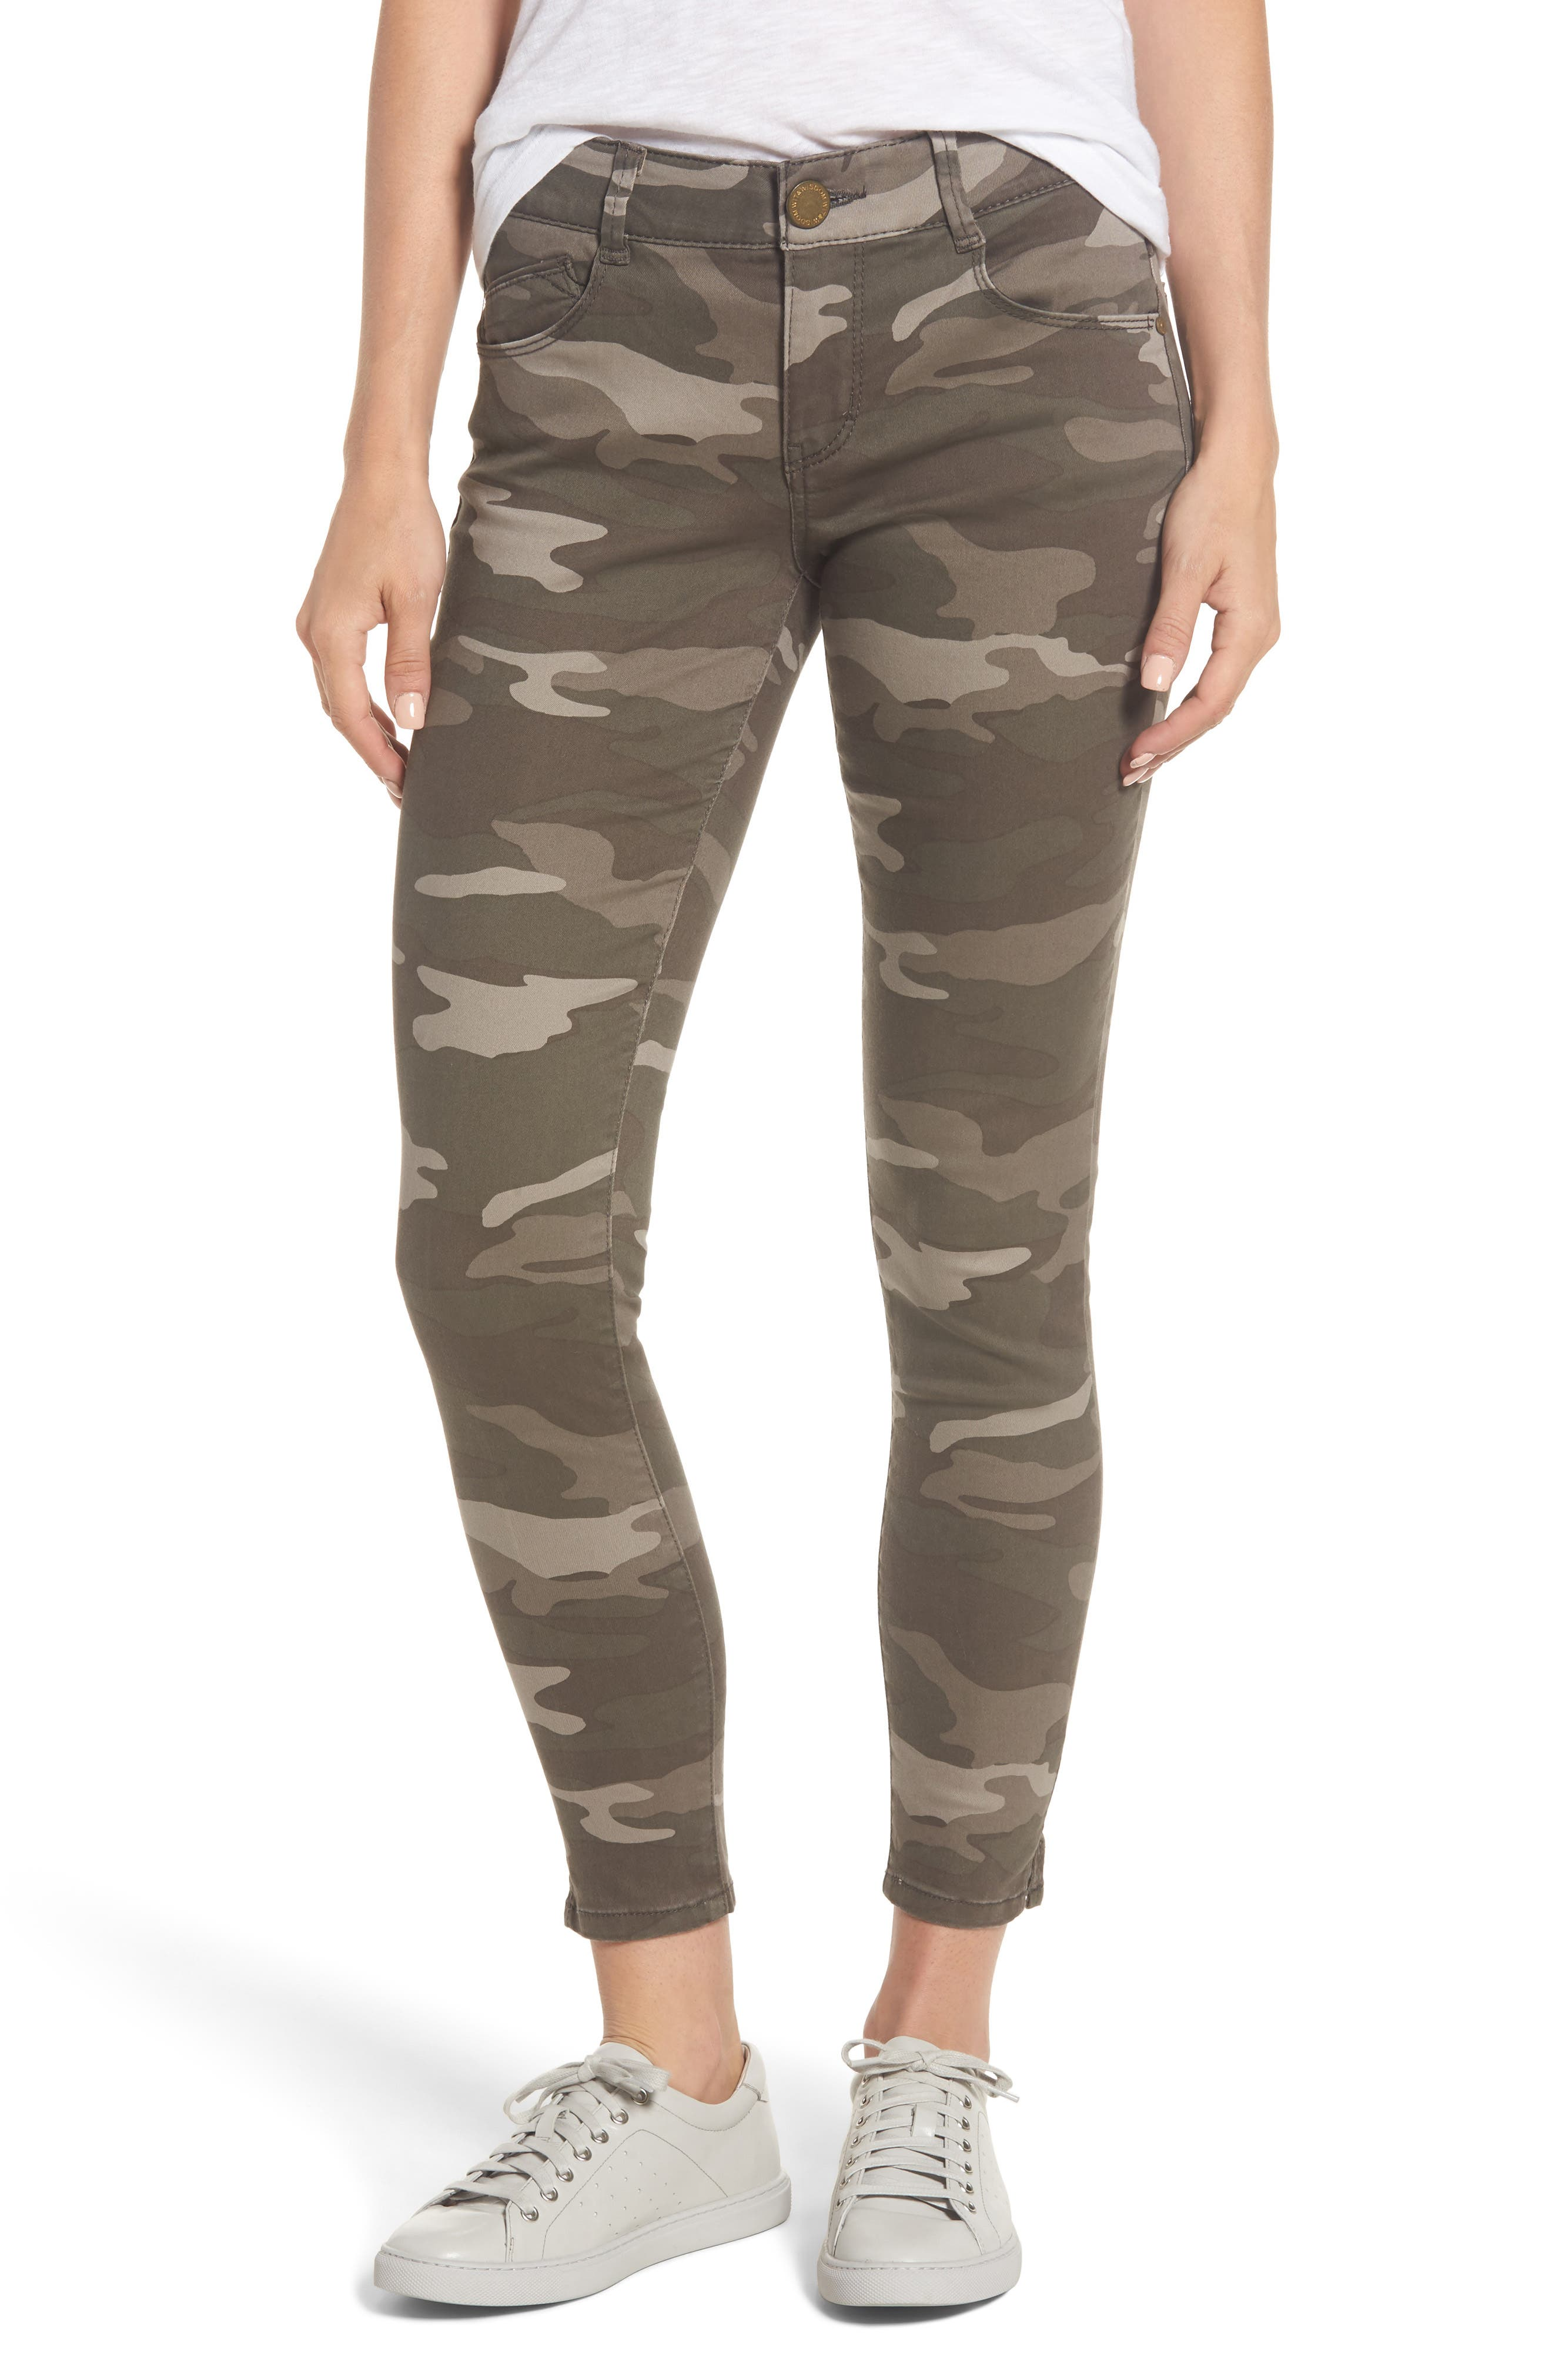 Ab-solution Camo Stretch Ankle Skinny Jeans,                             Main thumbnail 1, color,                             201